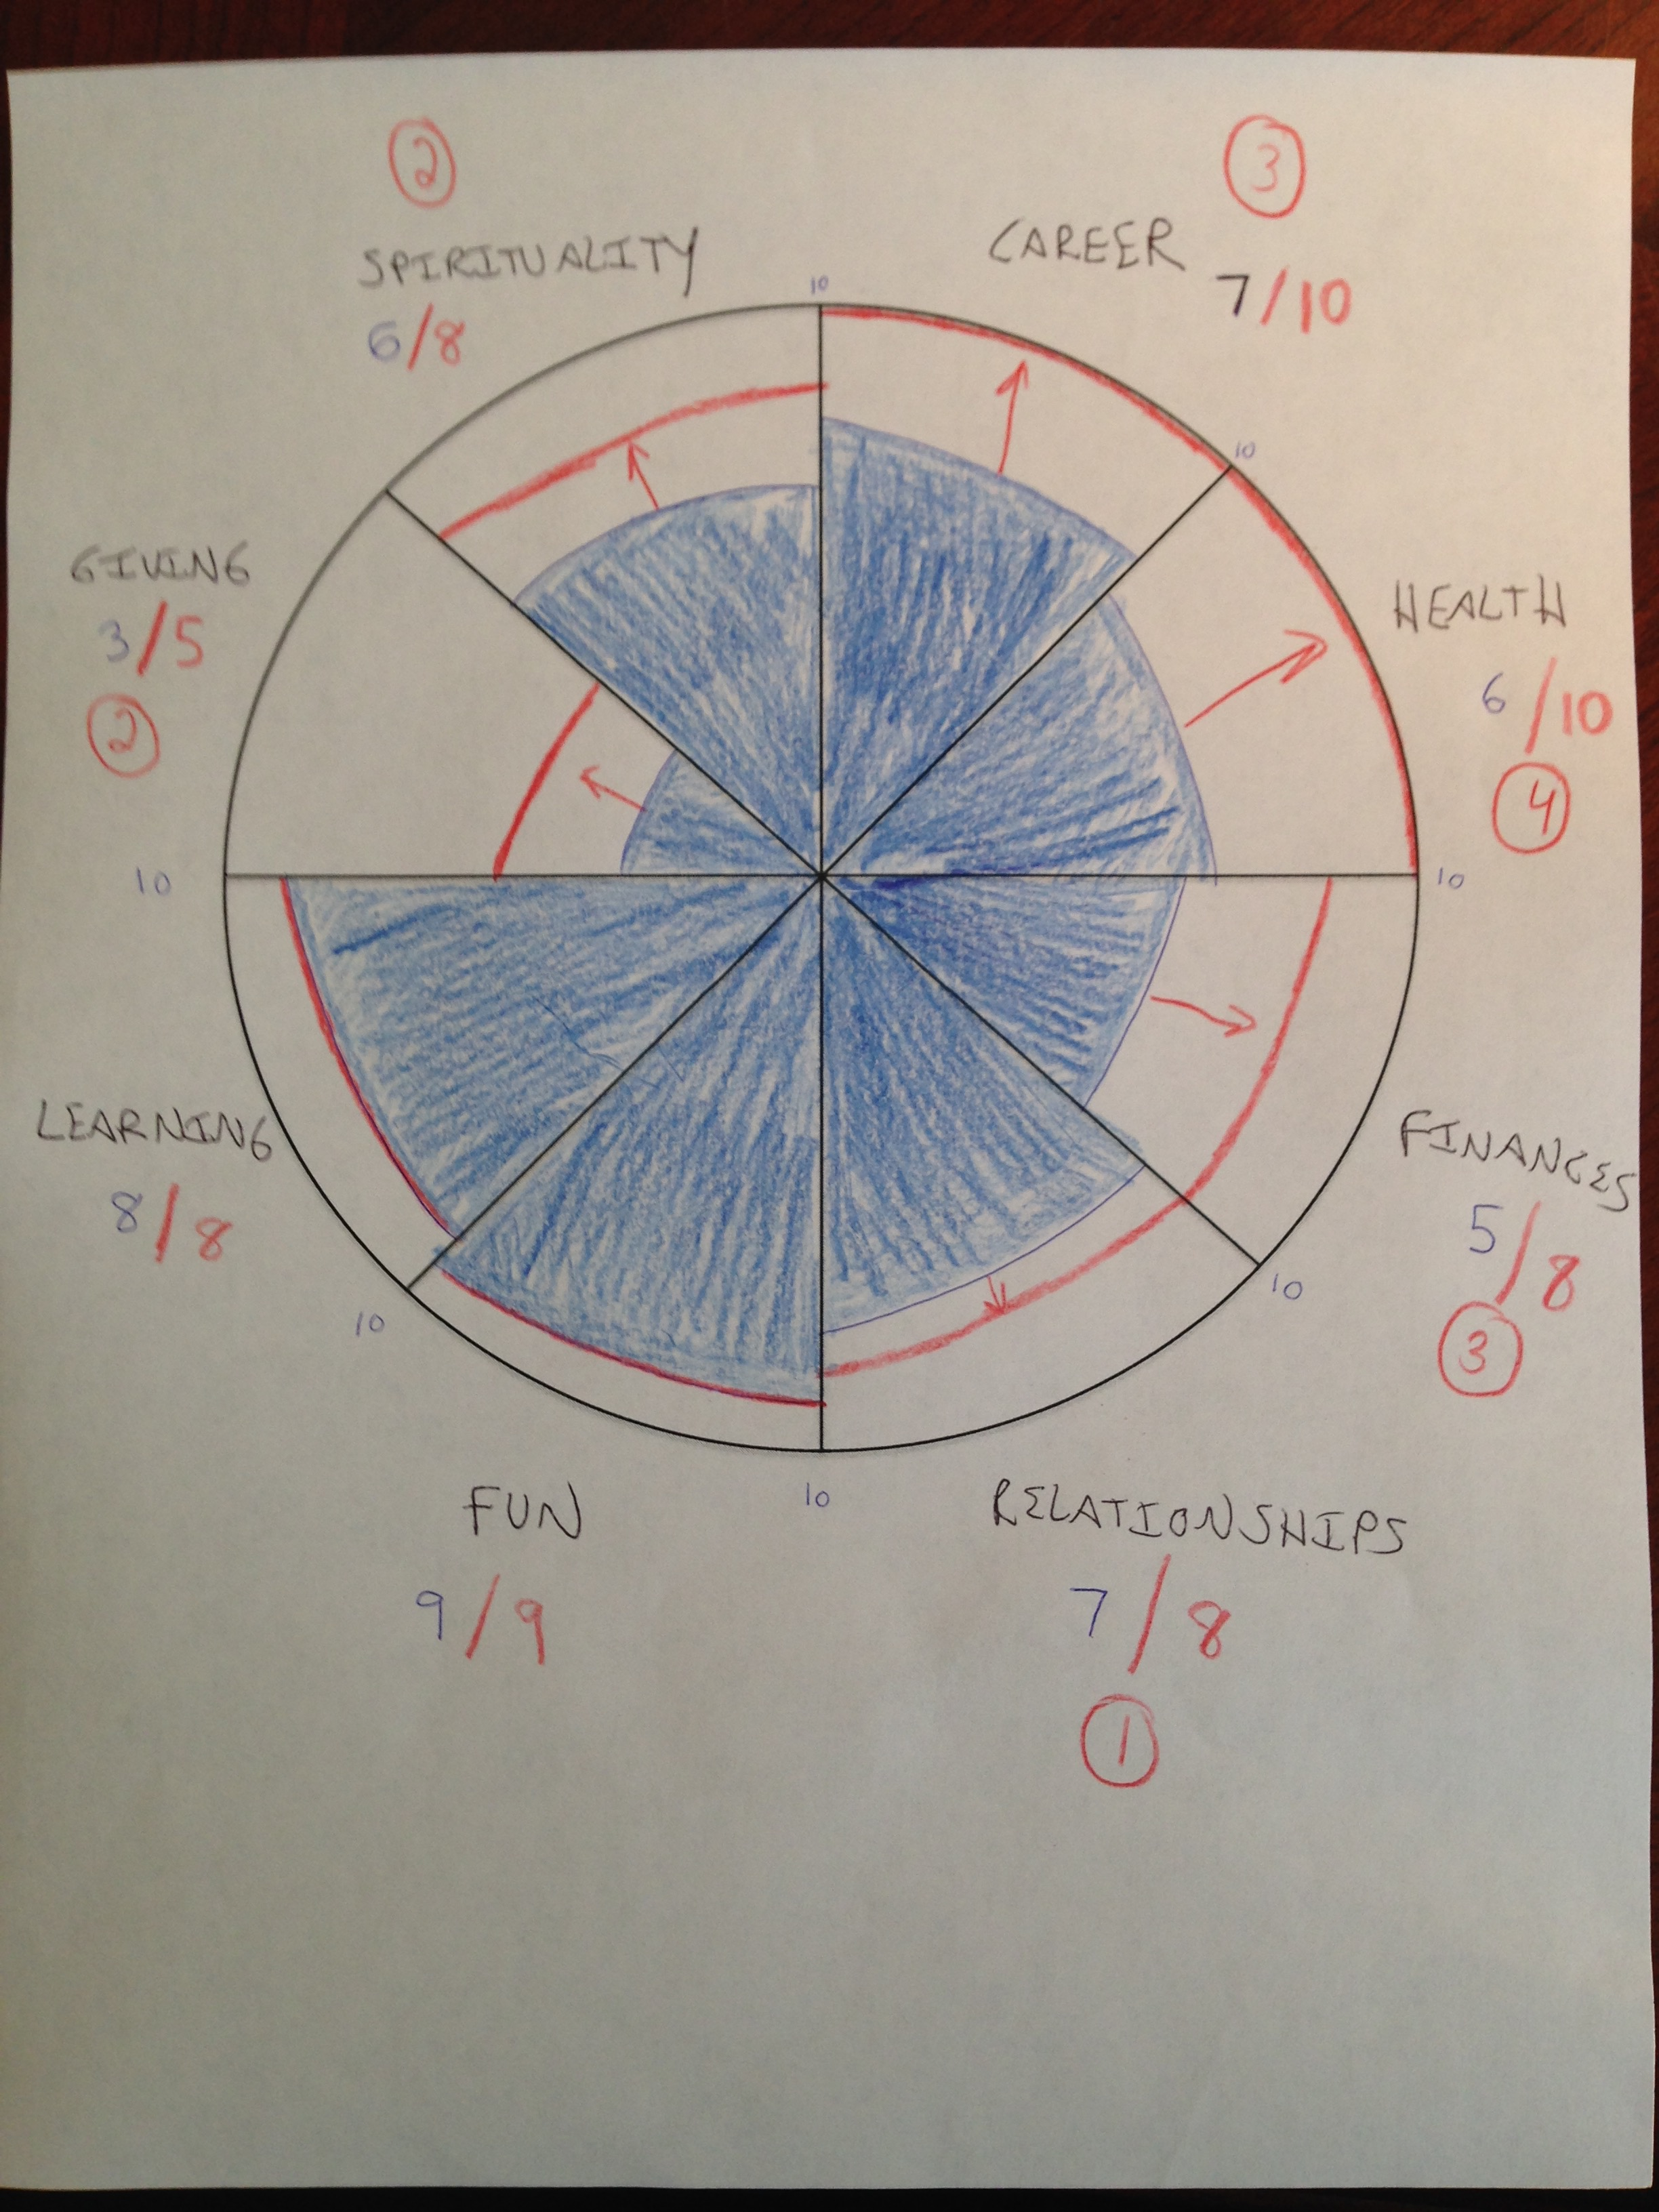 The Wheel Of Life: How To Plan For A Life Of Balanced Success Regarding Blank Performance Profile Wheel Template